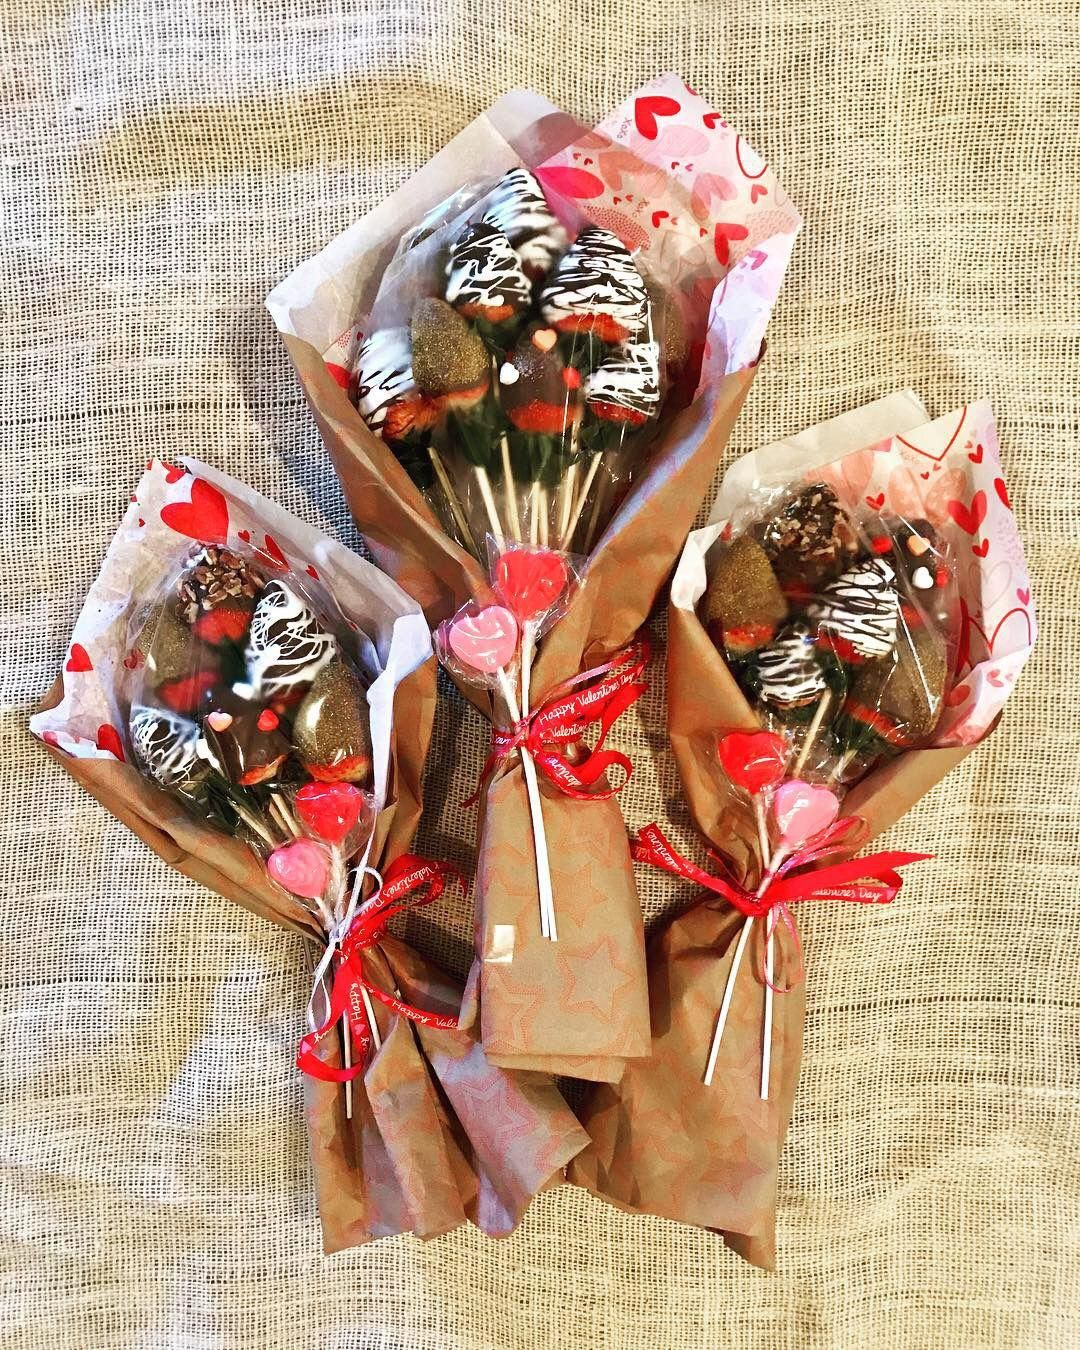 Pin By Geovanadelgado Delgado On Valentine Treats Valentines Day Chocolates Valentine Chocolate Chocolate Covered Strawberries Bouquet